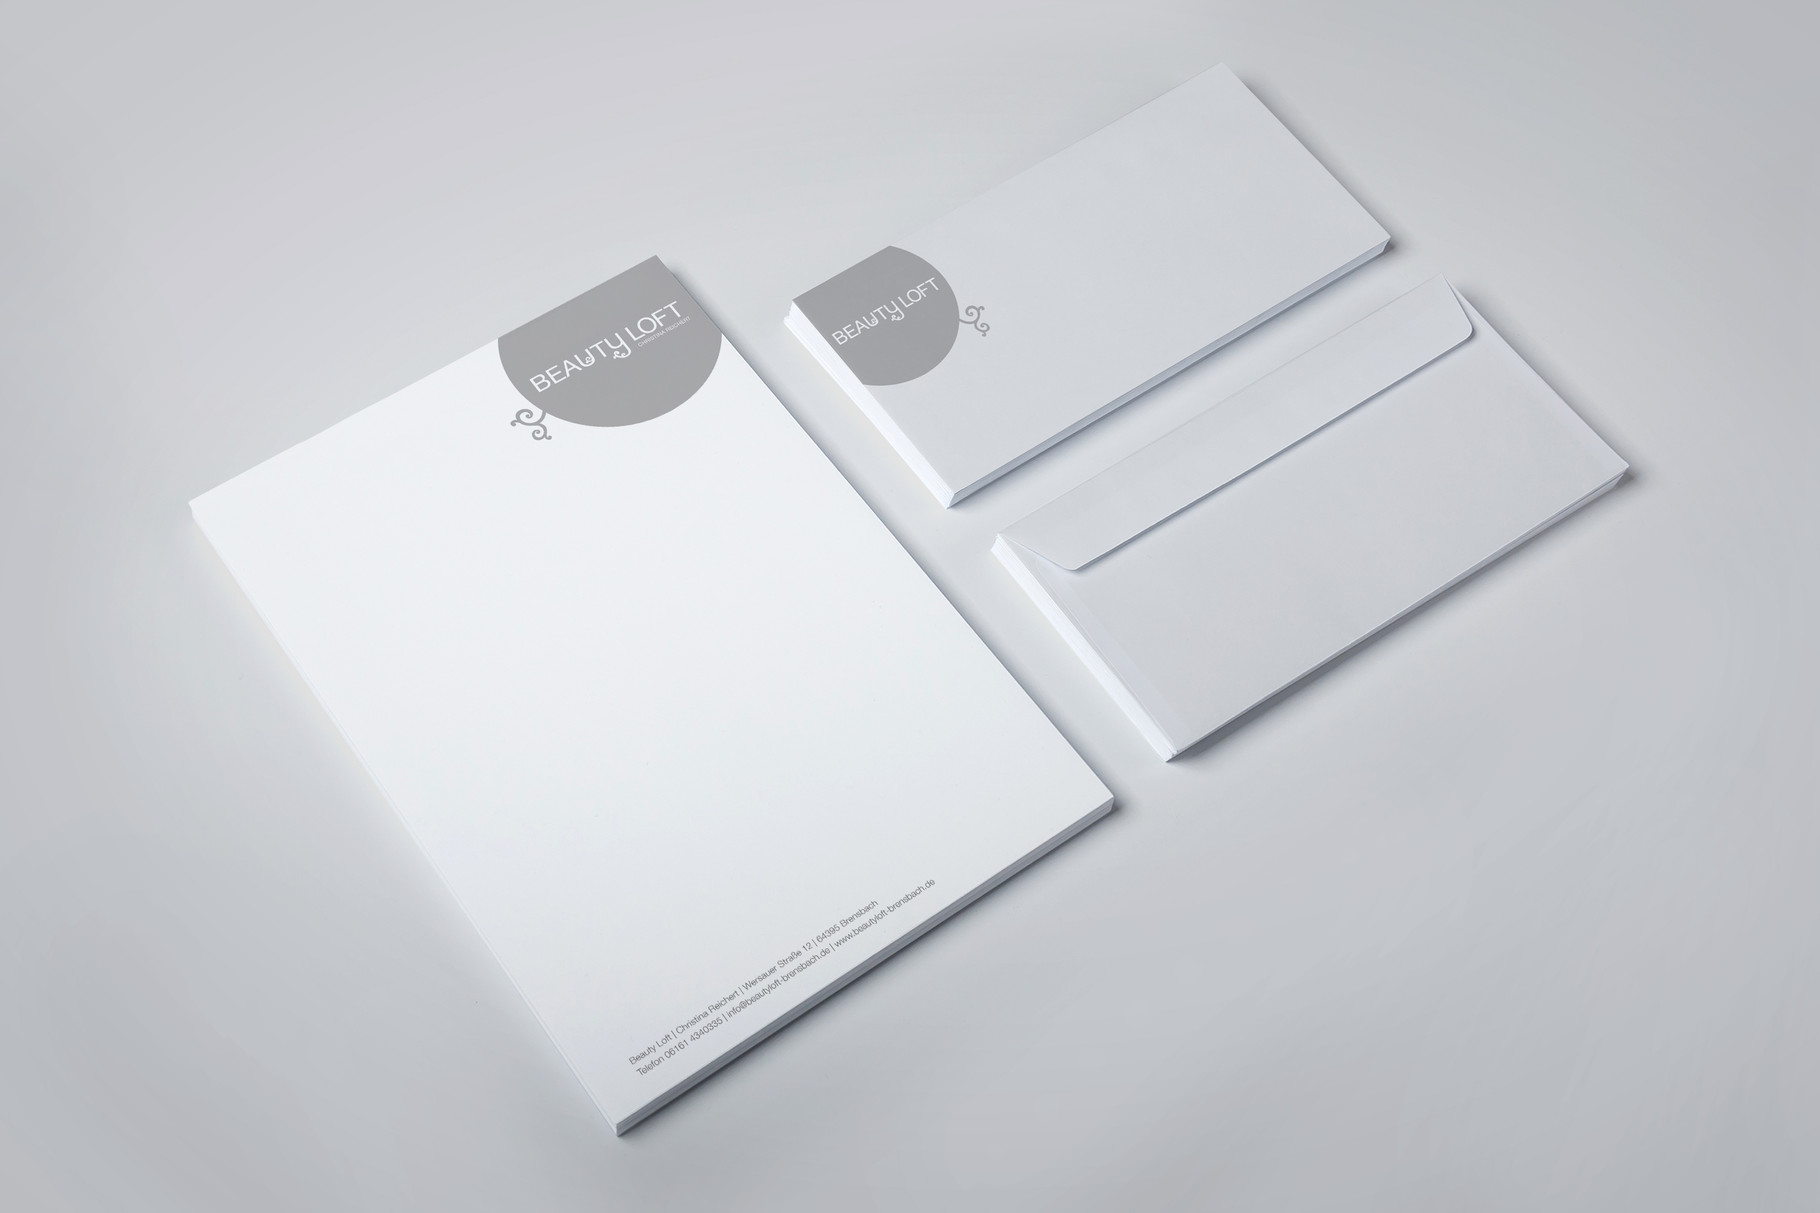 Corporate Design, Logoentwicklung, Logo, Grafikdesign, Grafik, Gestaltung, Beautyloft Briefpapier